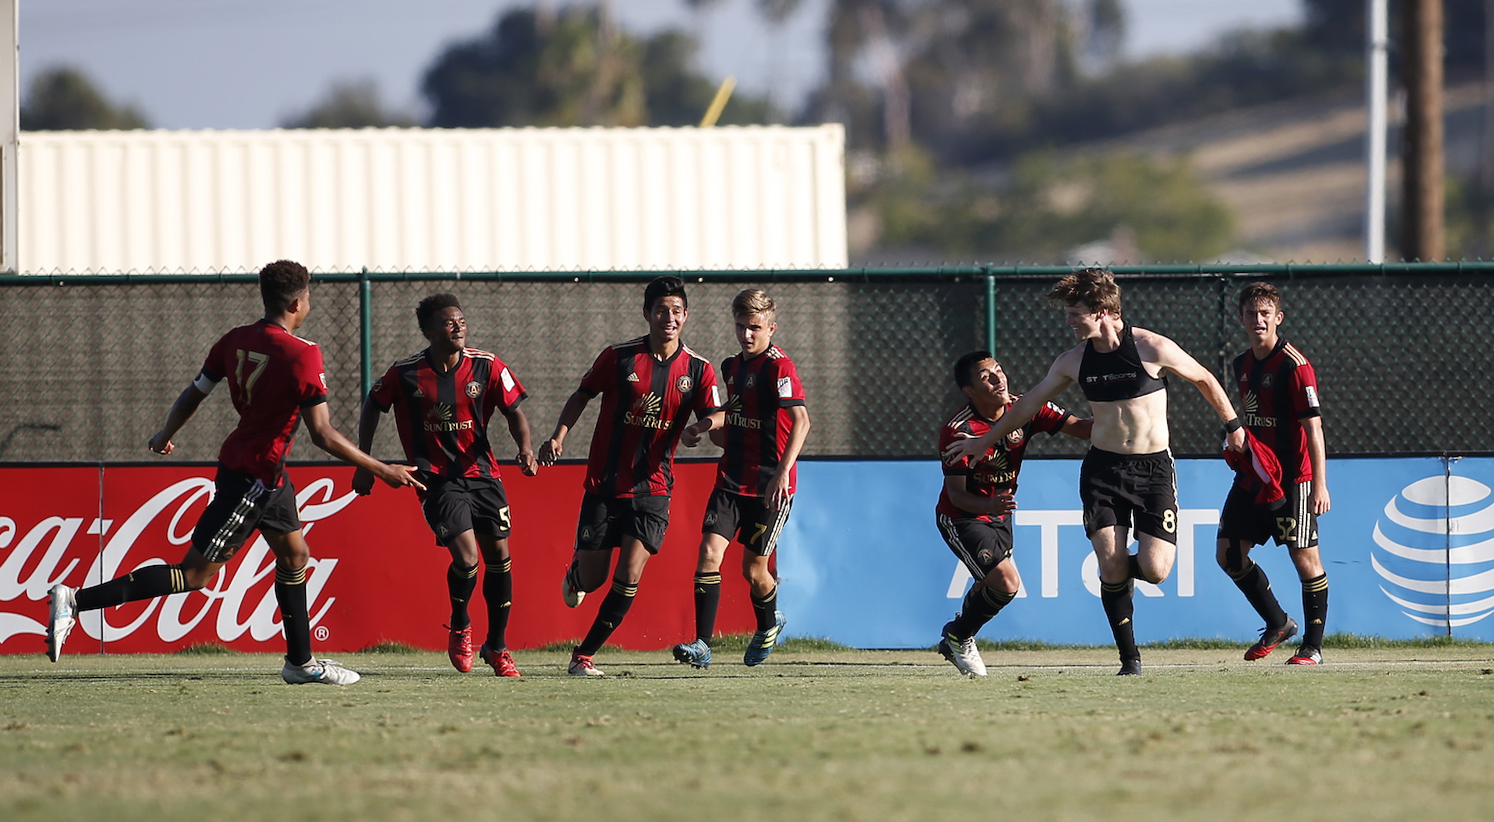 a11c613cd JACKSON CONWAY S EXTRA TIME GOAL PROPELS ATLANTA UNITED U-16 17 TO ACADEMY  CHAMPIONSHIPS